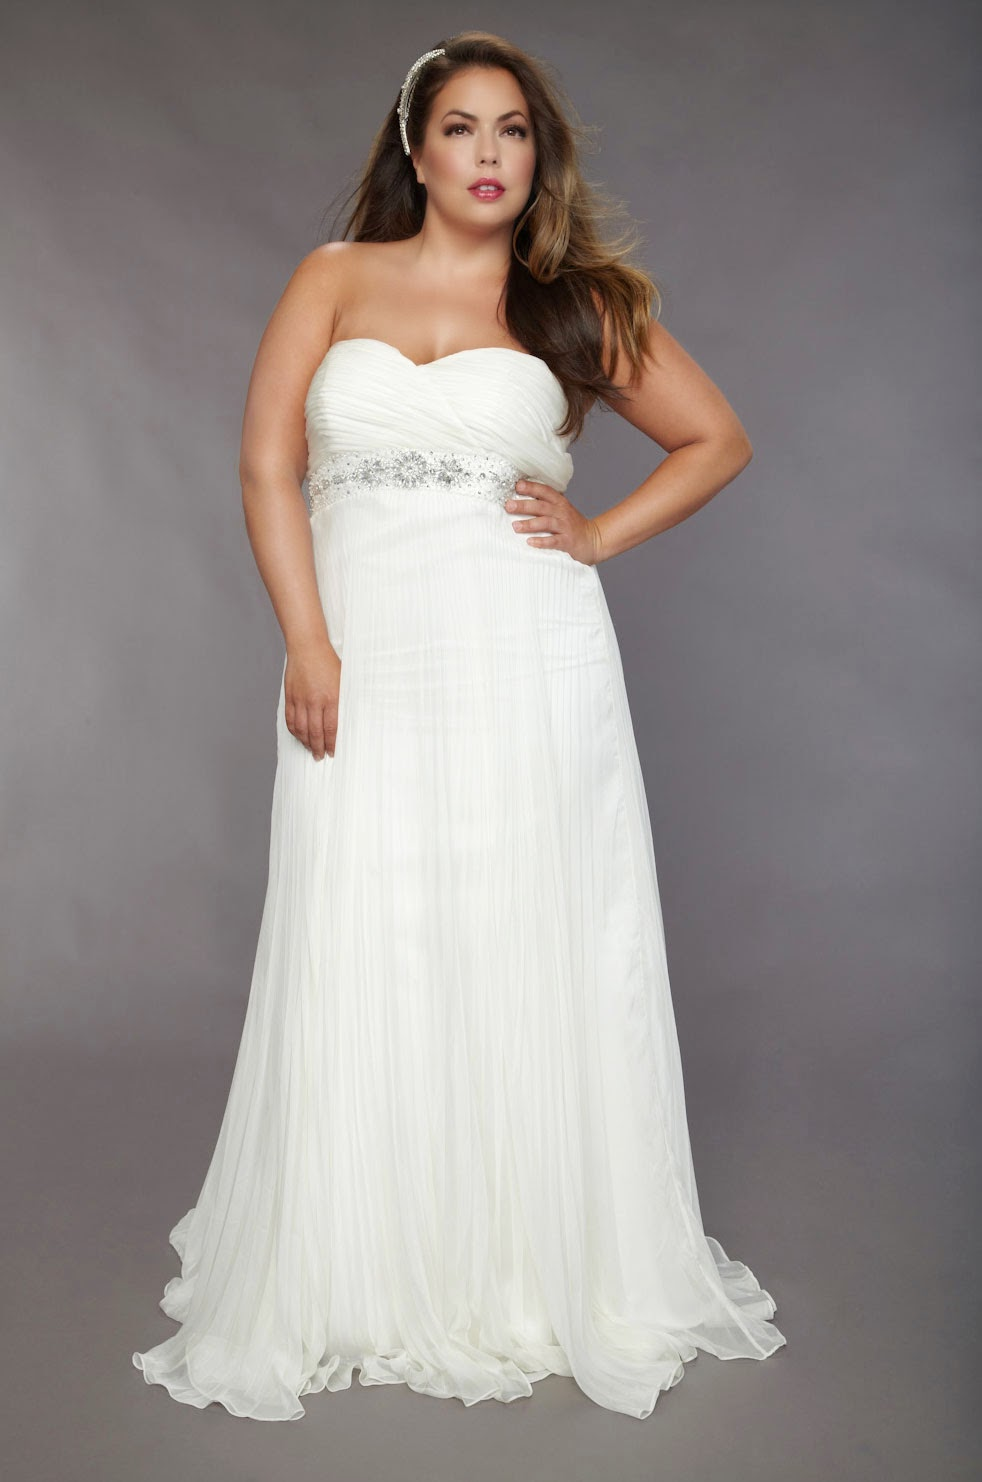 Plus size wedding dresses for older brides second marriage for Wedding dresses for plus size mature brides